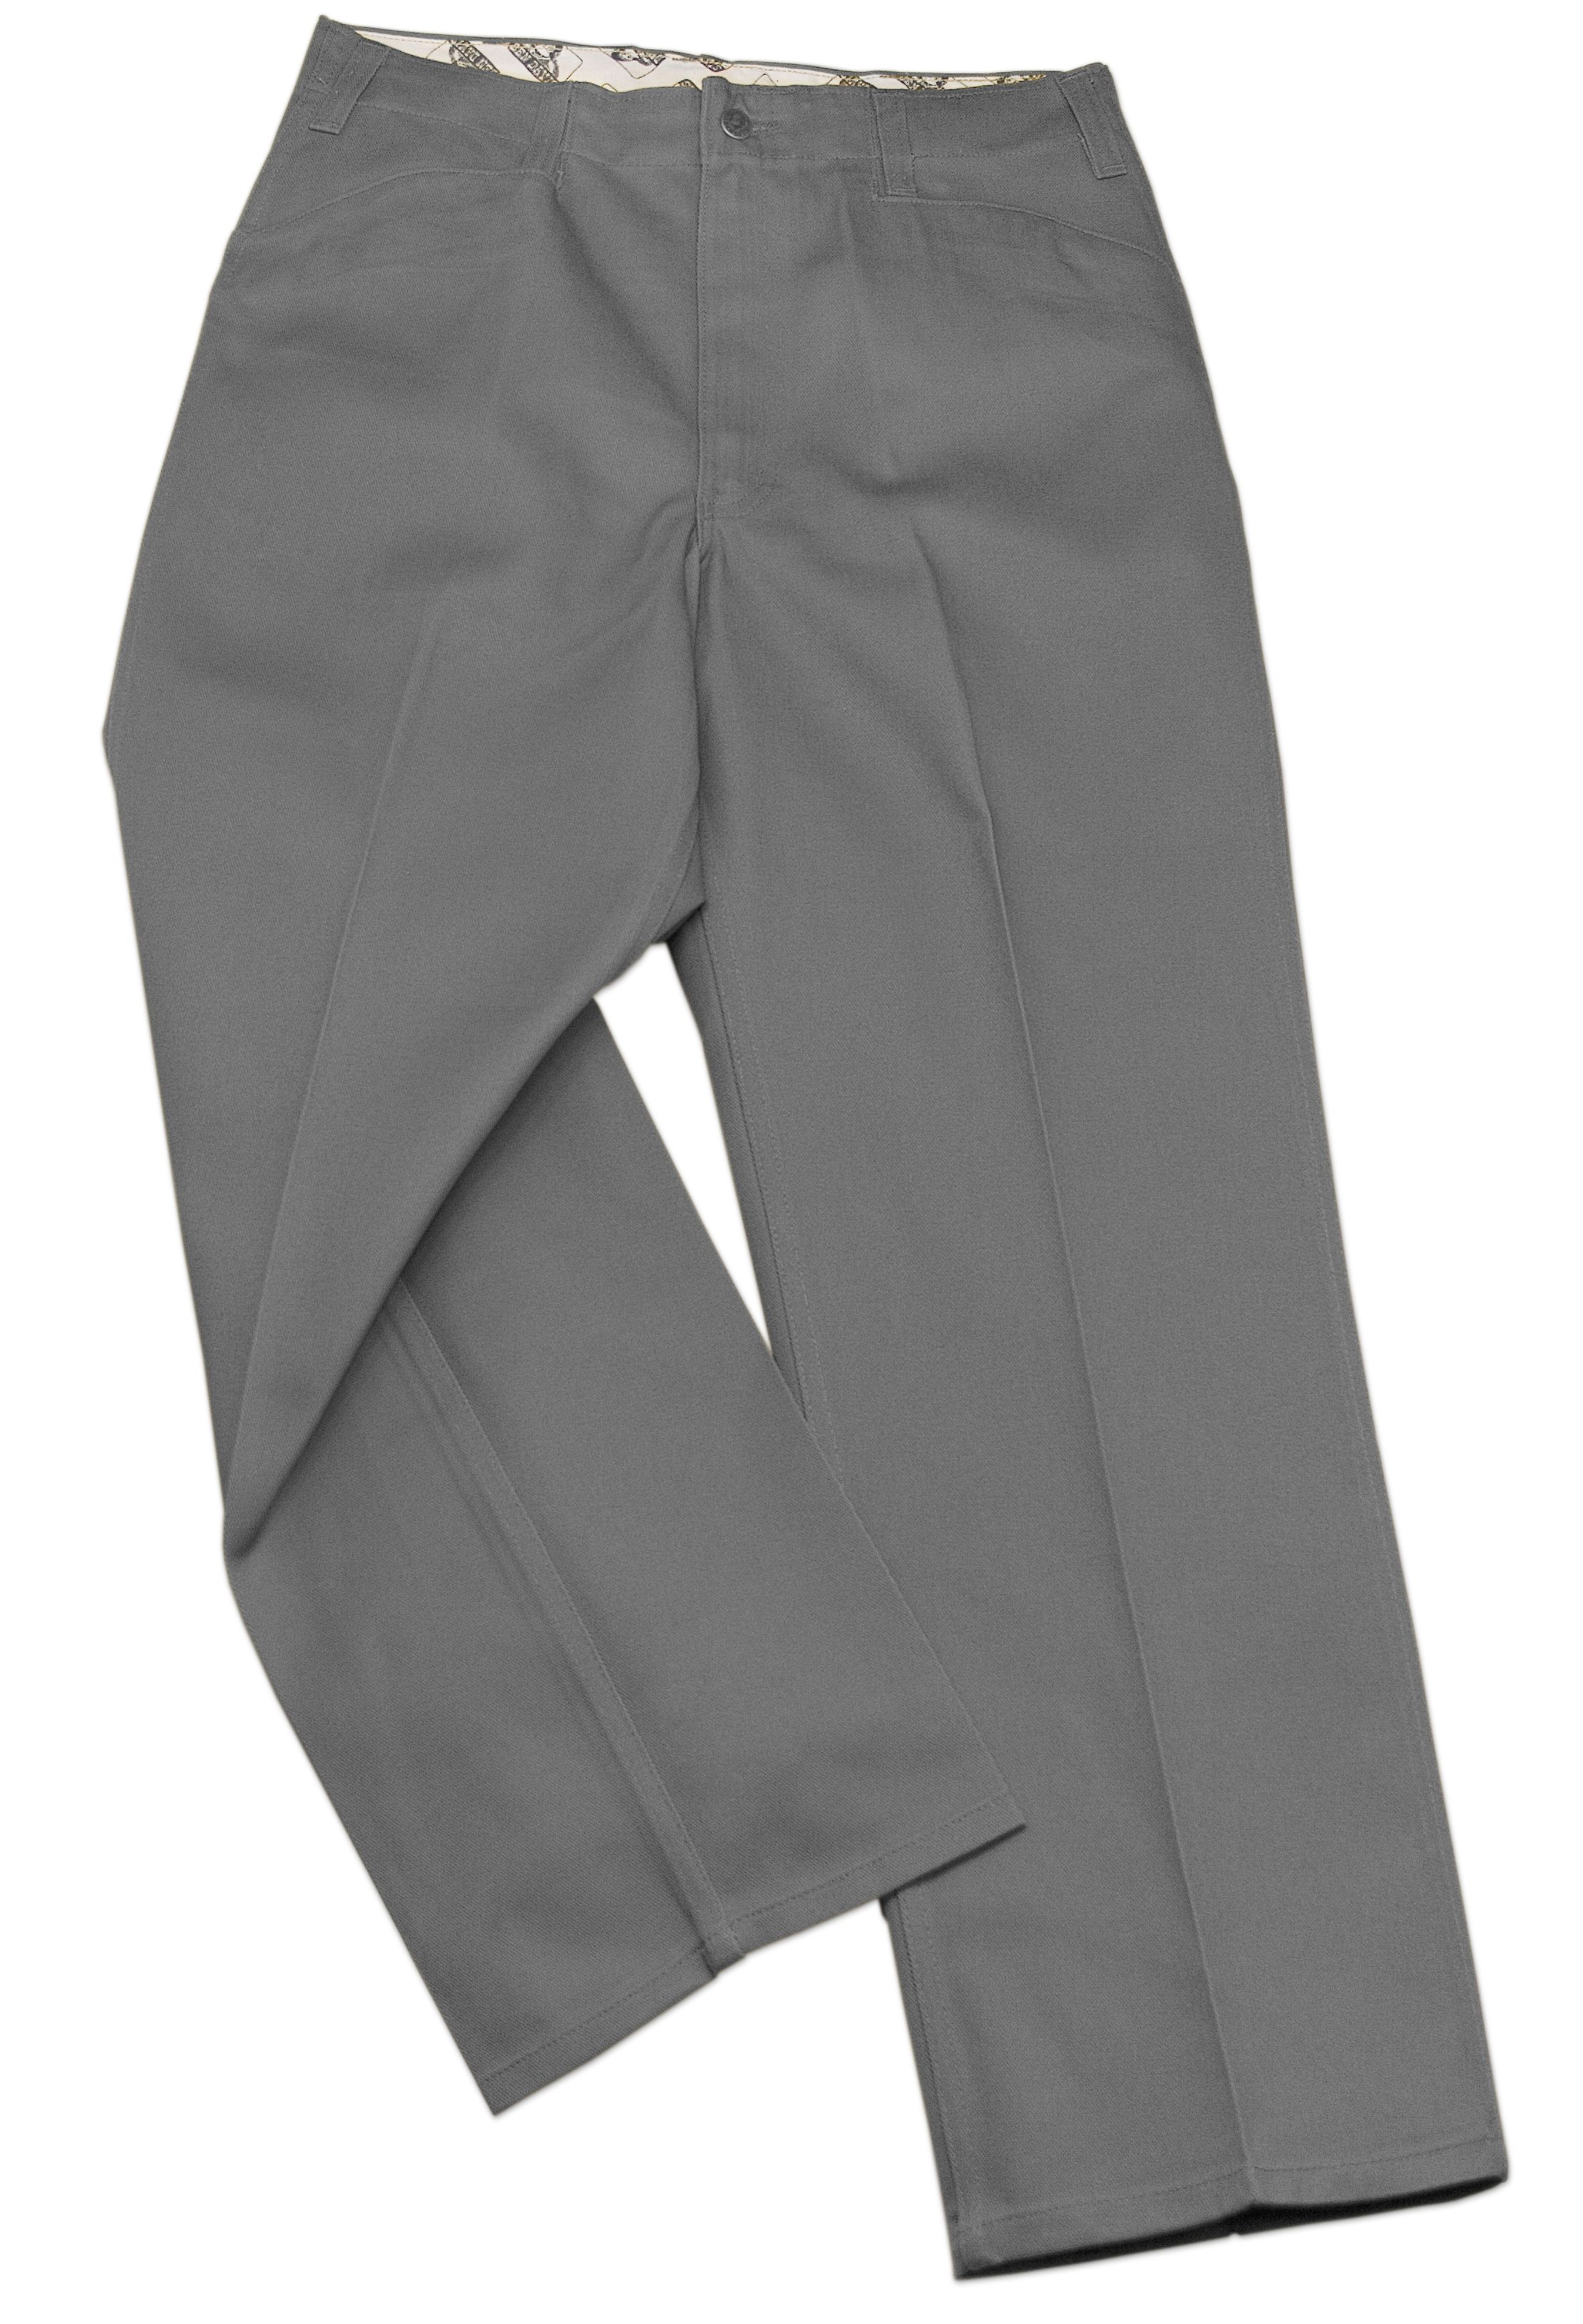 323be232 Original Ben's Pants Trim Fit - Ben Davis Clothing | Apparel ...